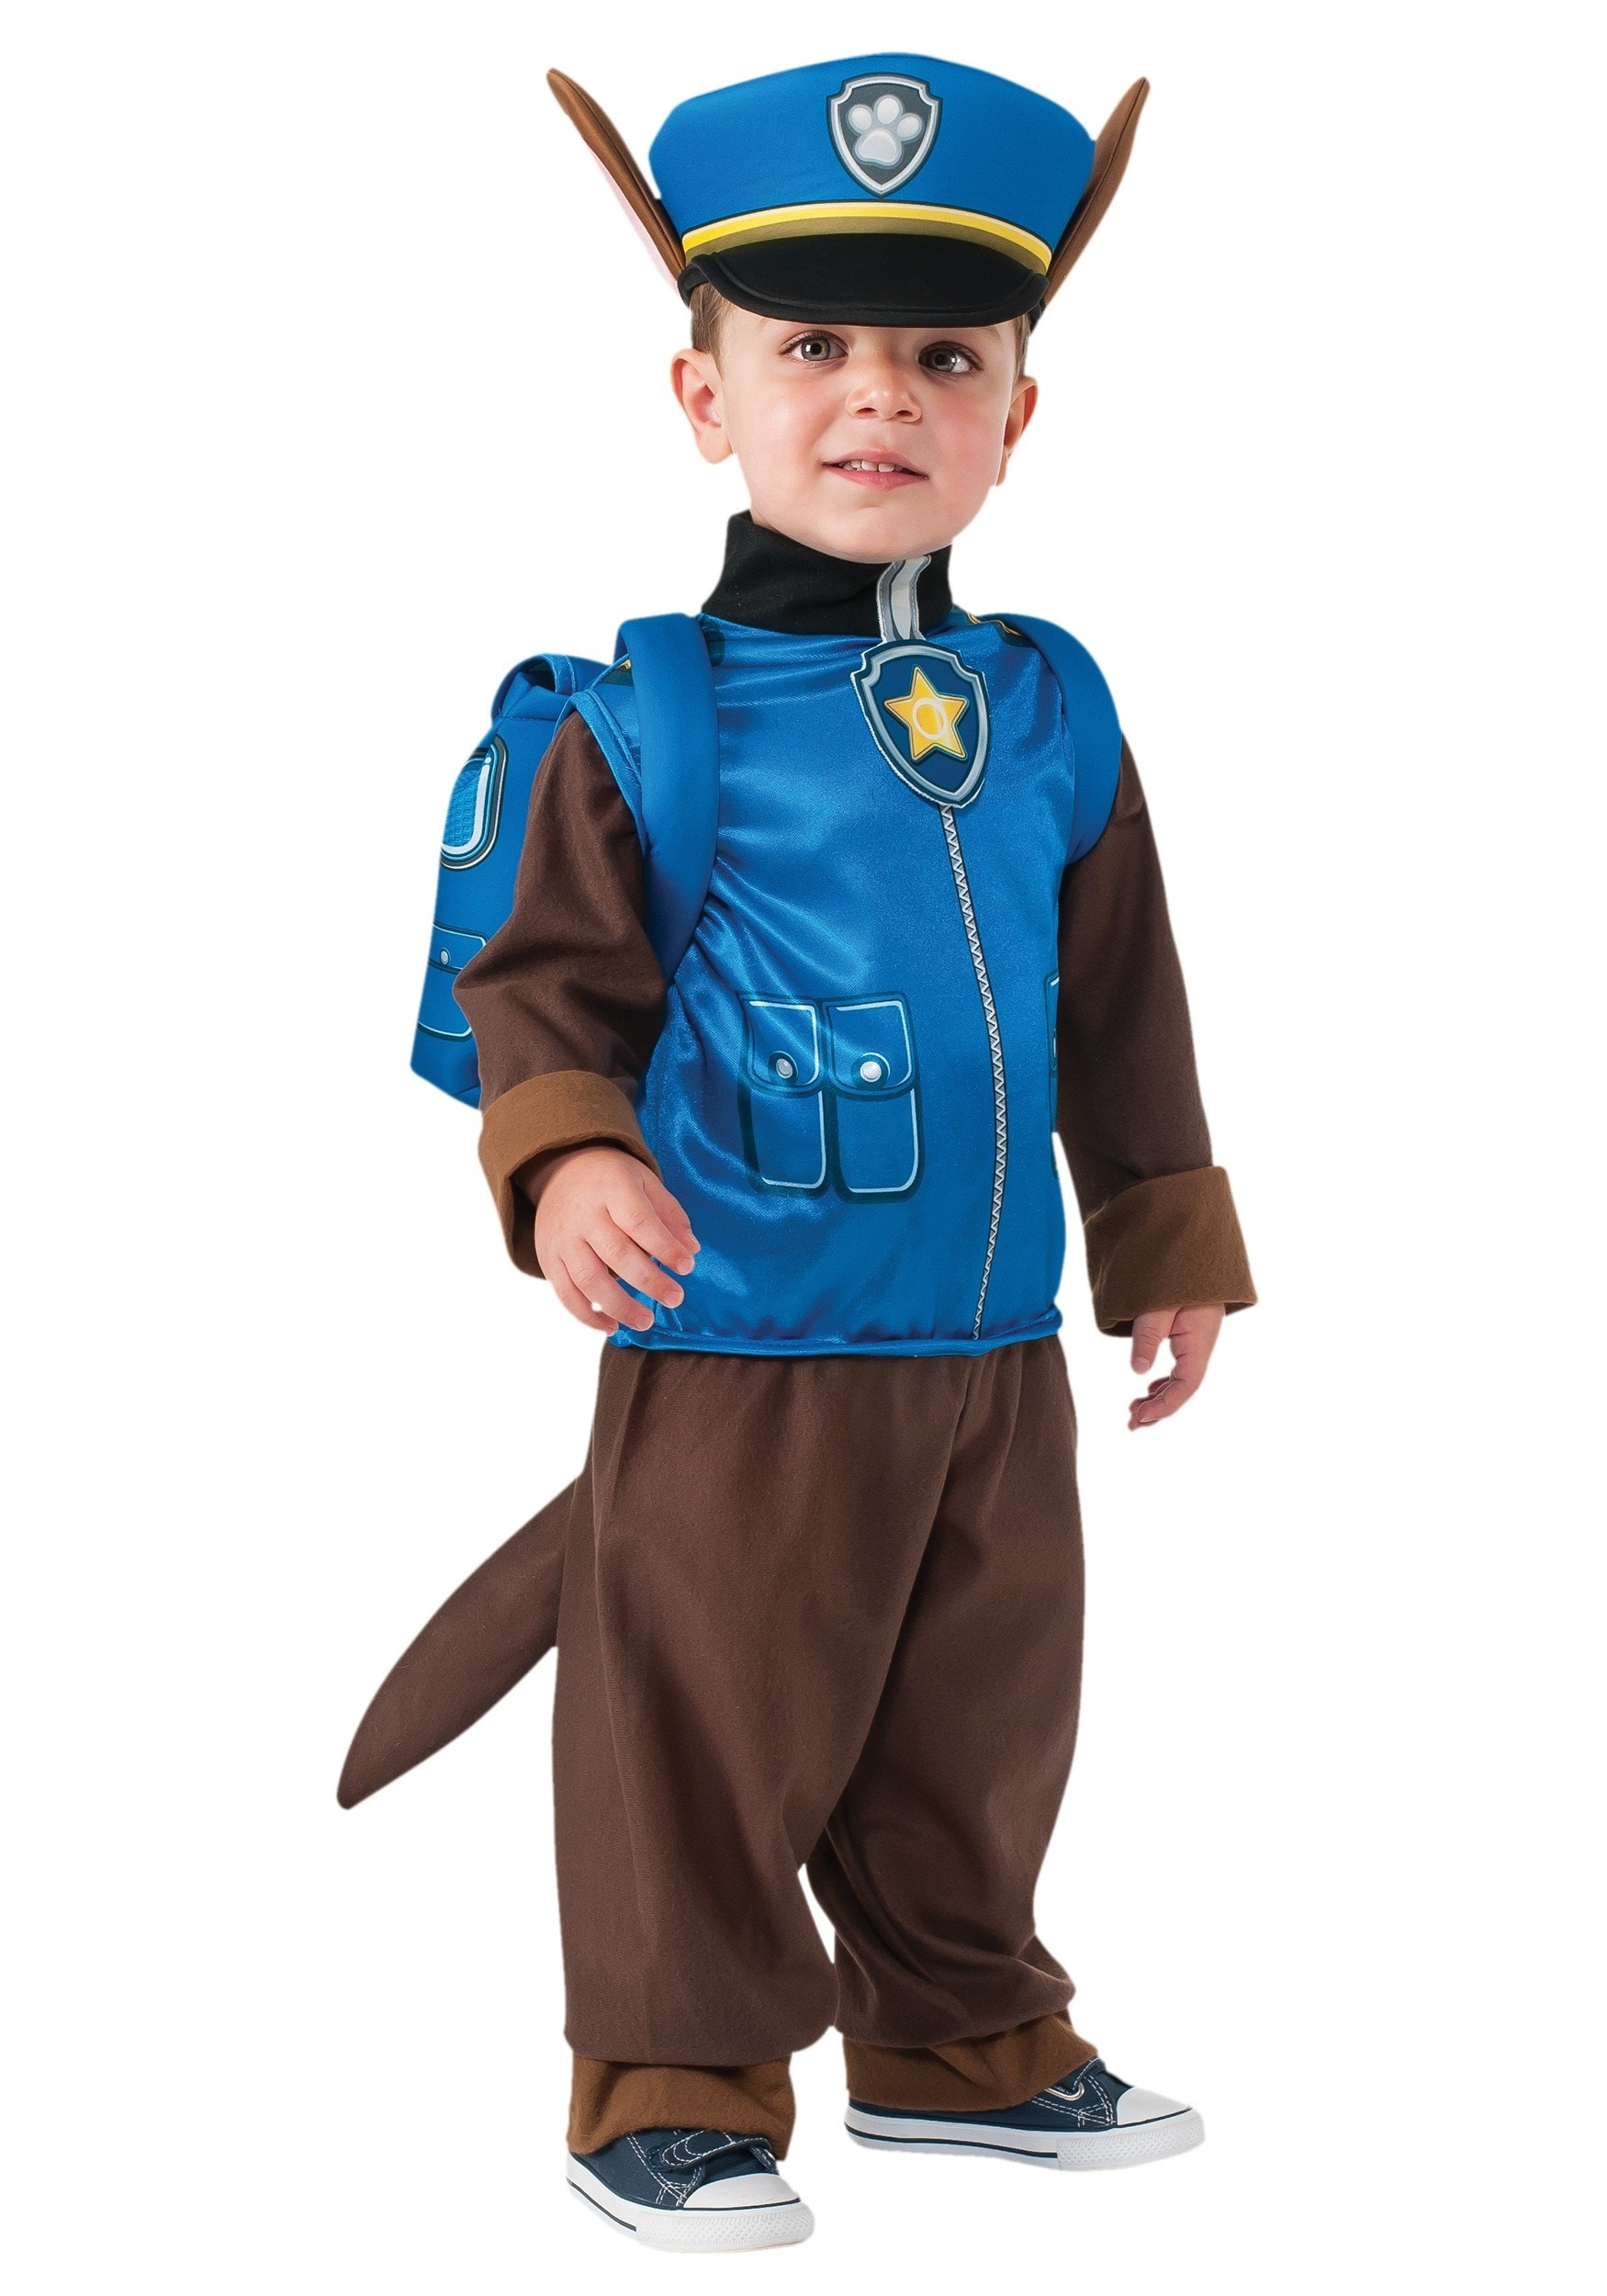 Paw Patrol Chase Child Costume  sc 1 st  Halloween Costumes & Dog Costumes For Kids u0026 Adults - HalloweenCostumes.com